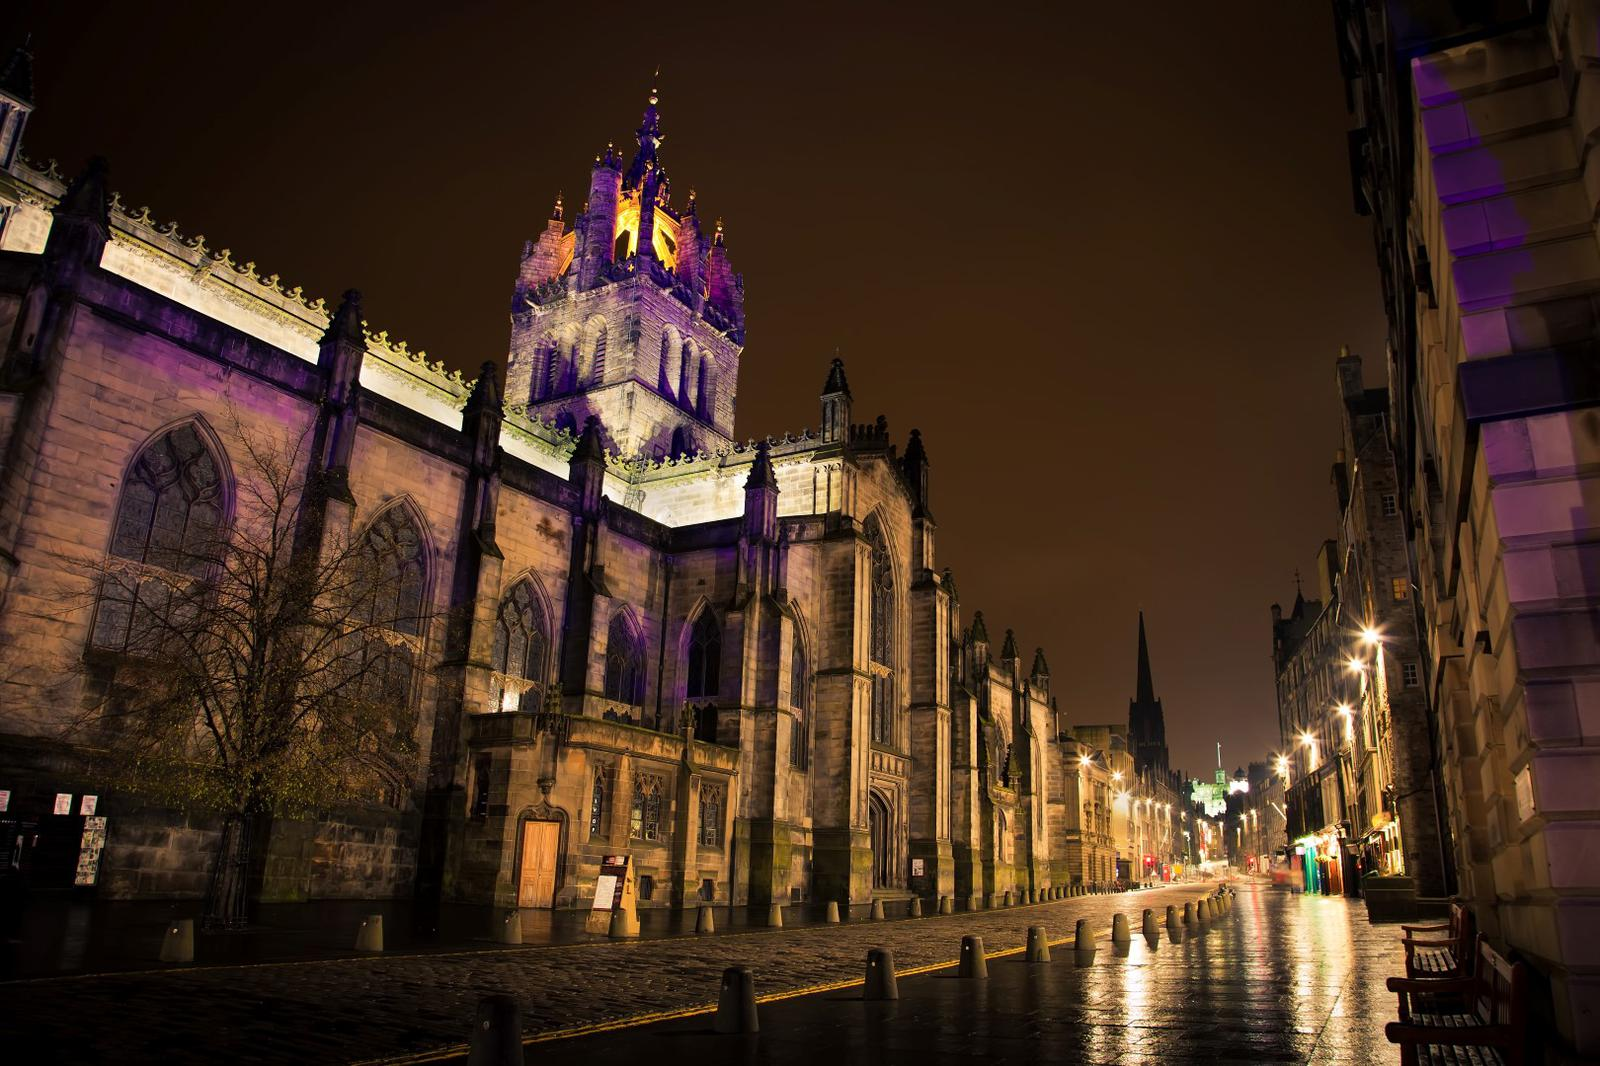 Royal Mile in the night. Edinburgh, Scotland